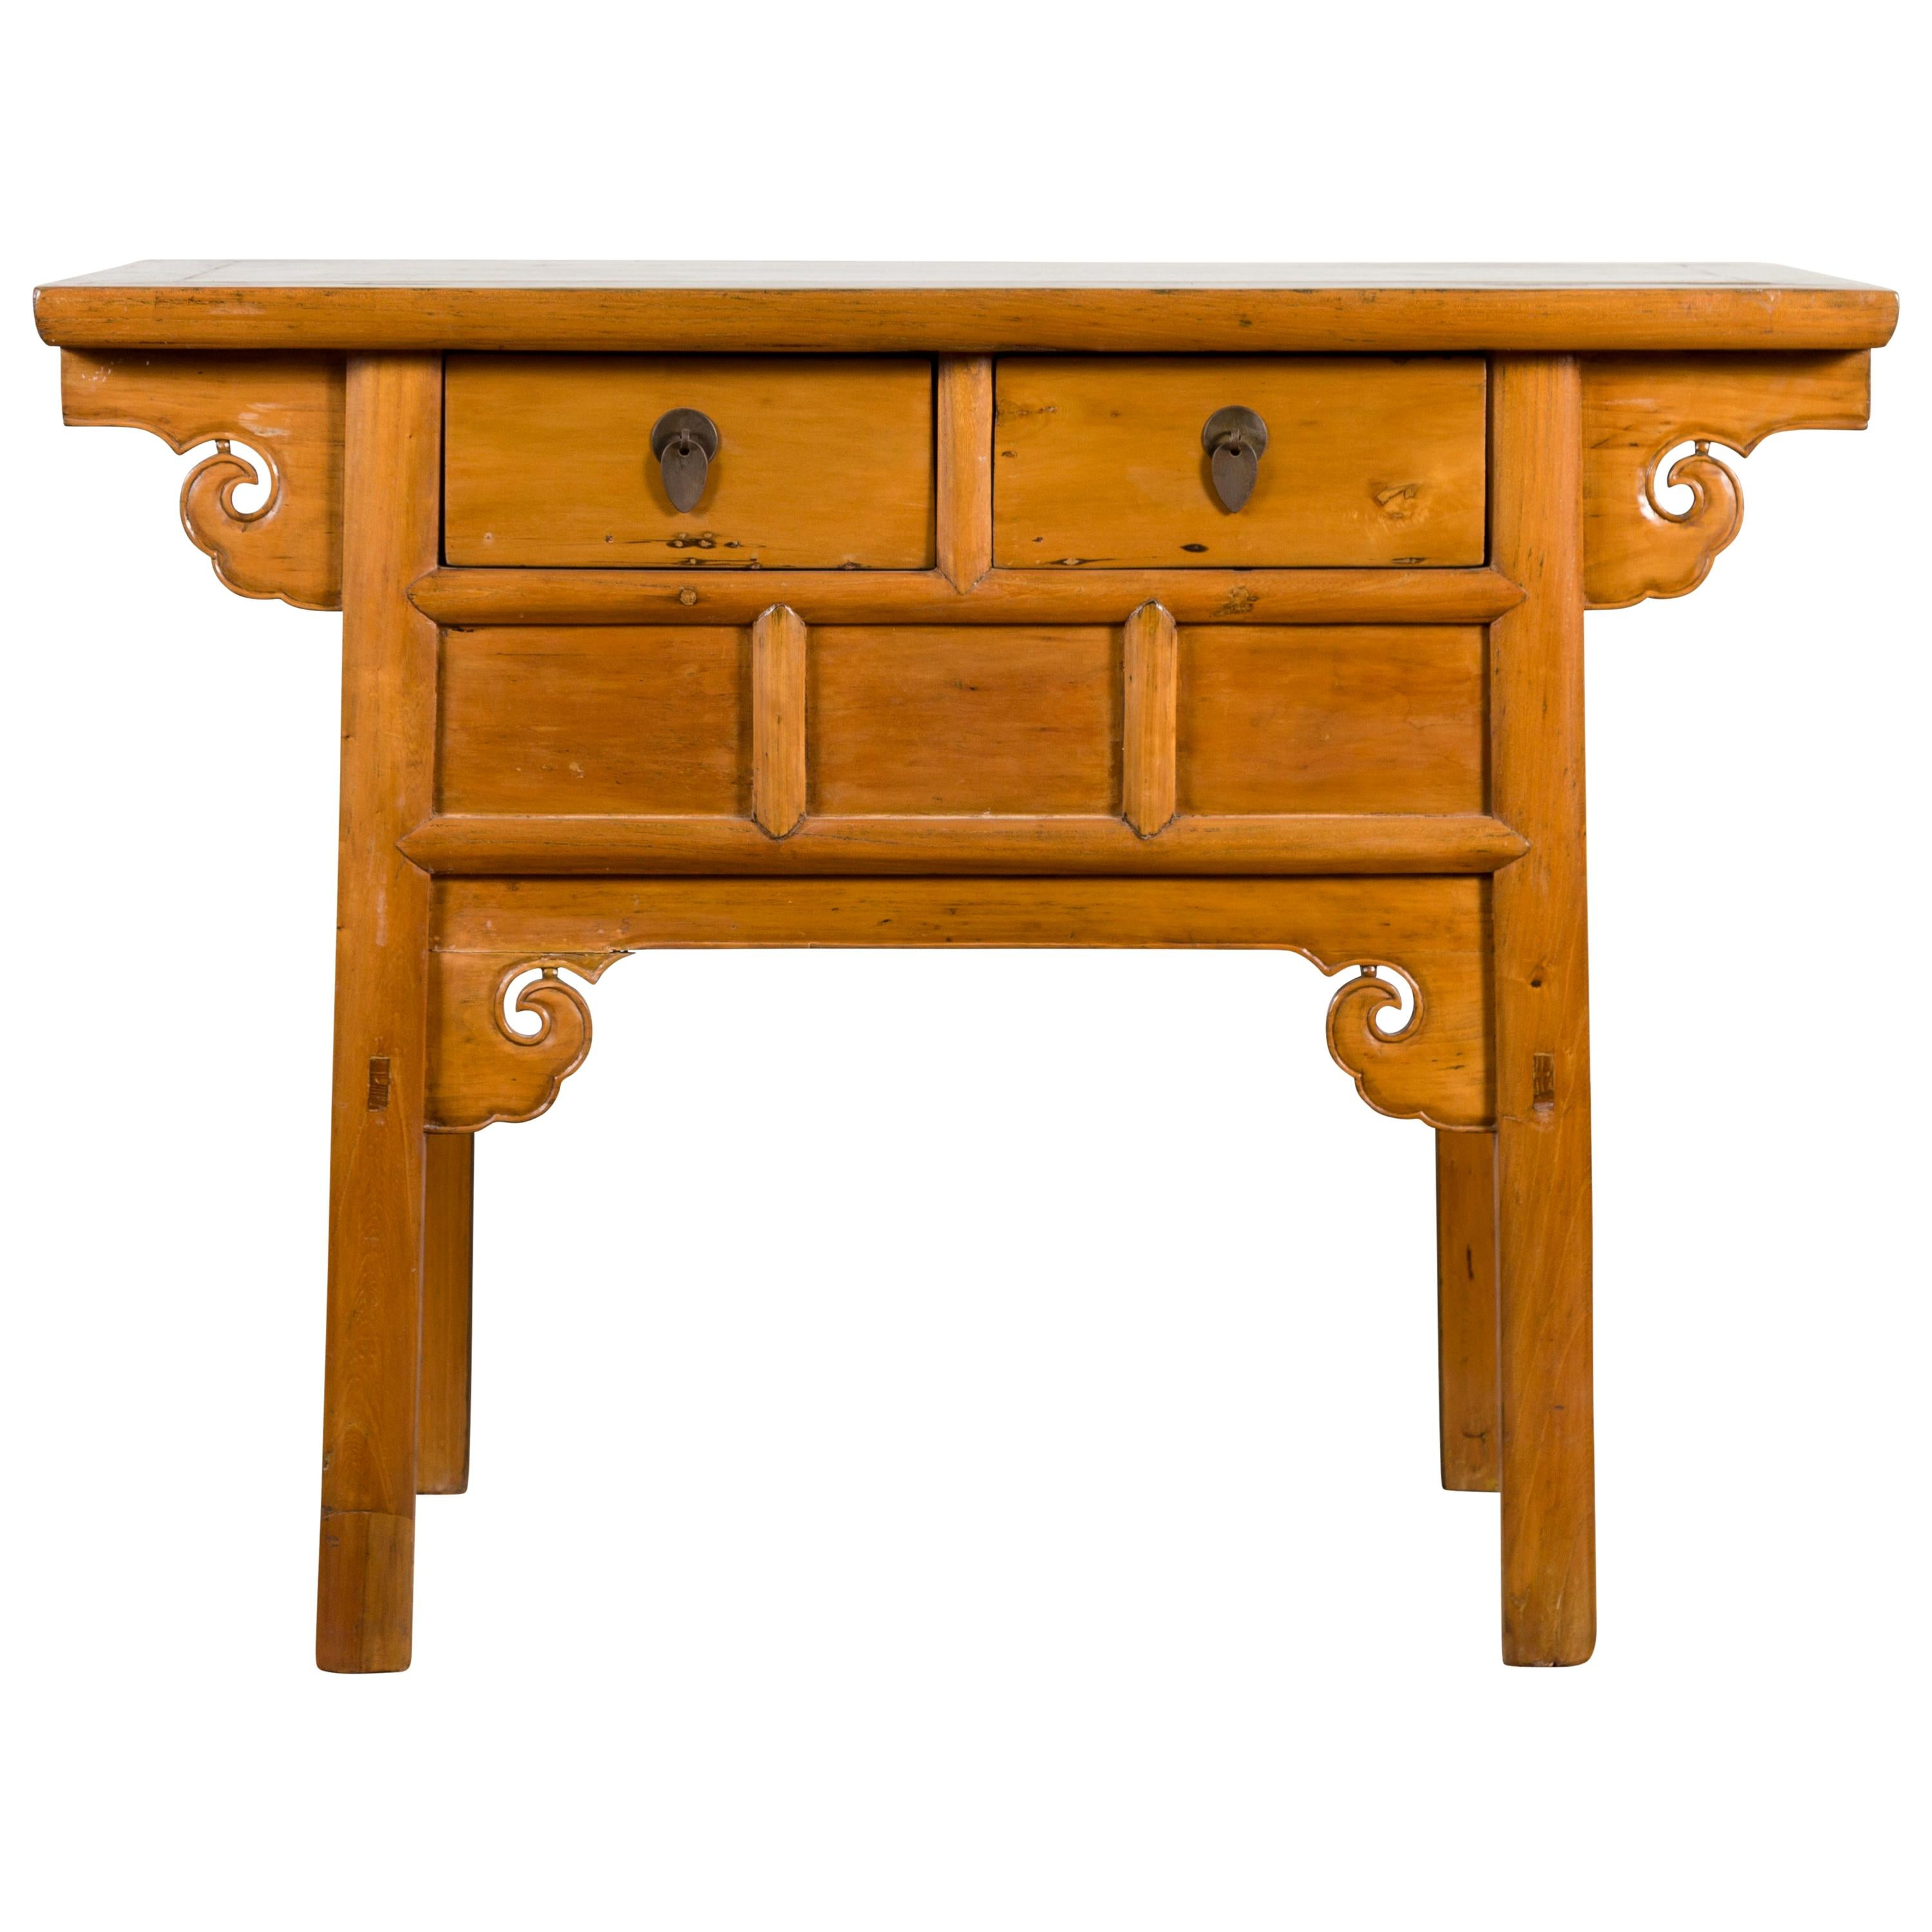 Chinese 19th Century Qing Dynasty Elm Table with Carved Spandrels and Drawers